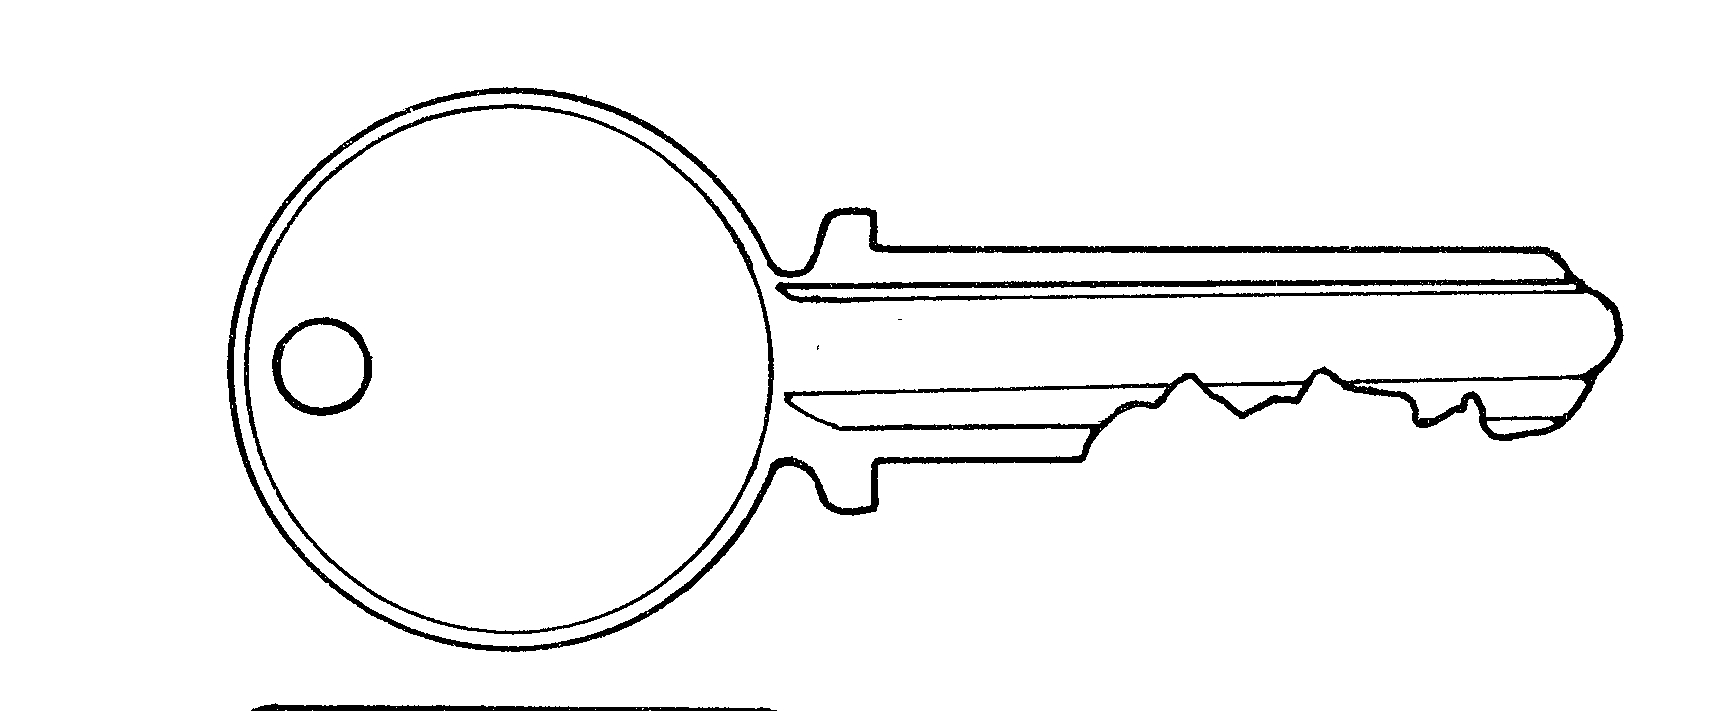 key clipart template - photo #11